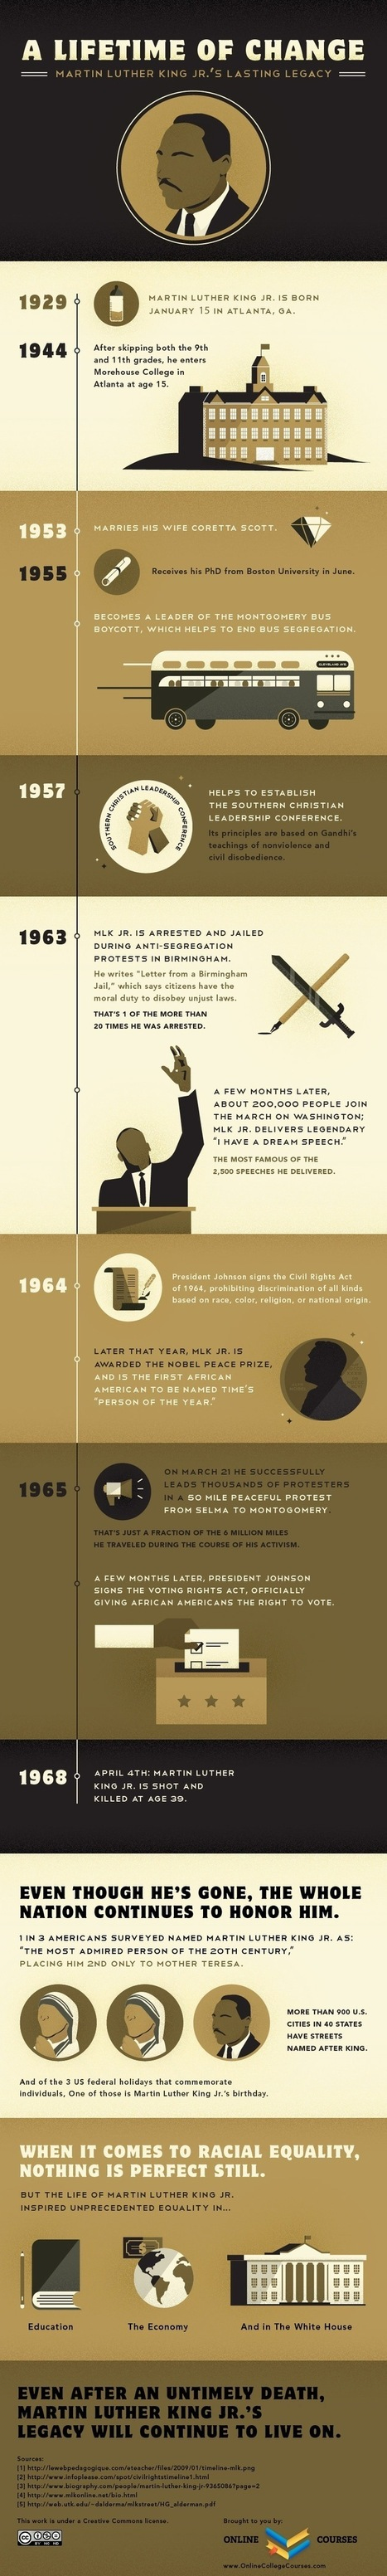 Infographic | A Lifetime of Change: Martin Luther King Jr.'s Lasting Legacy | World Political Leaders | Scoop.it